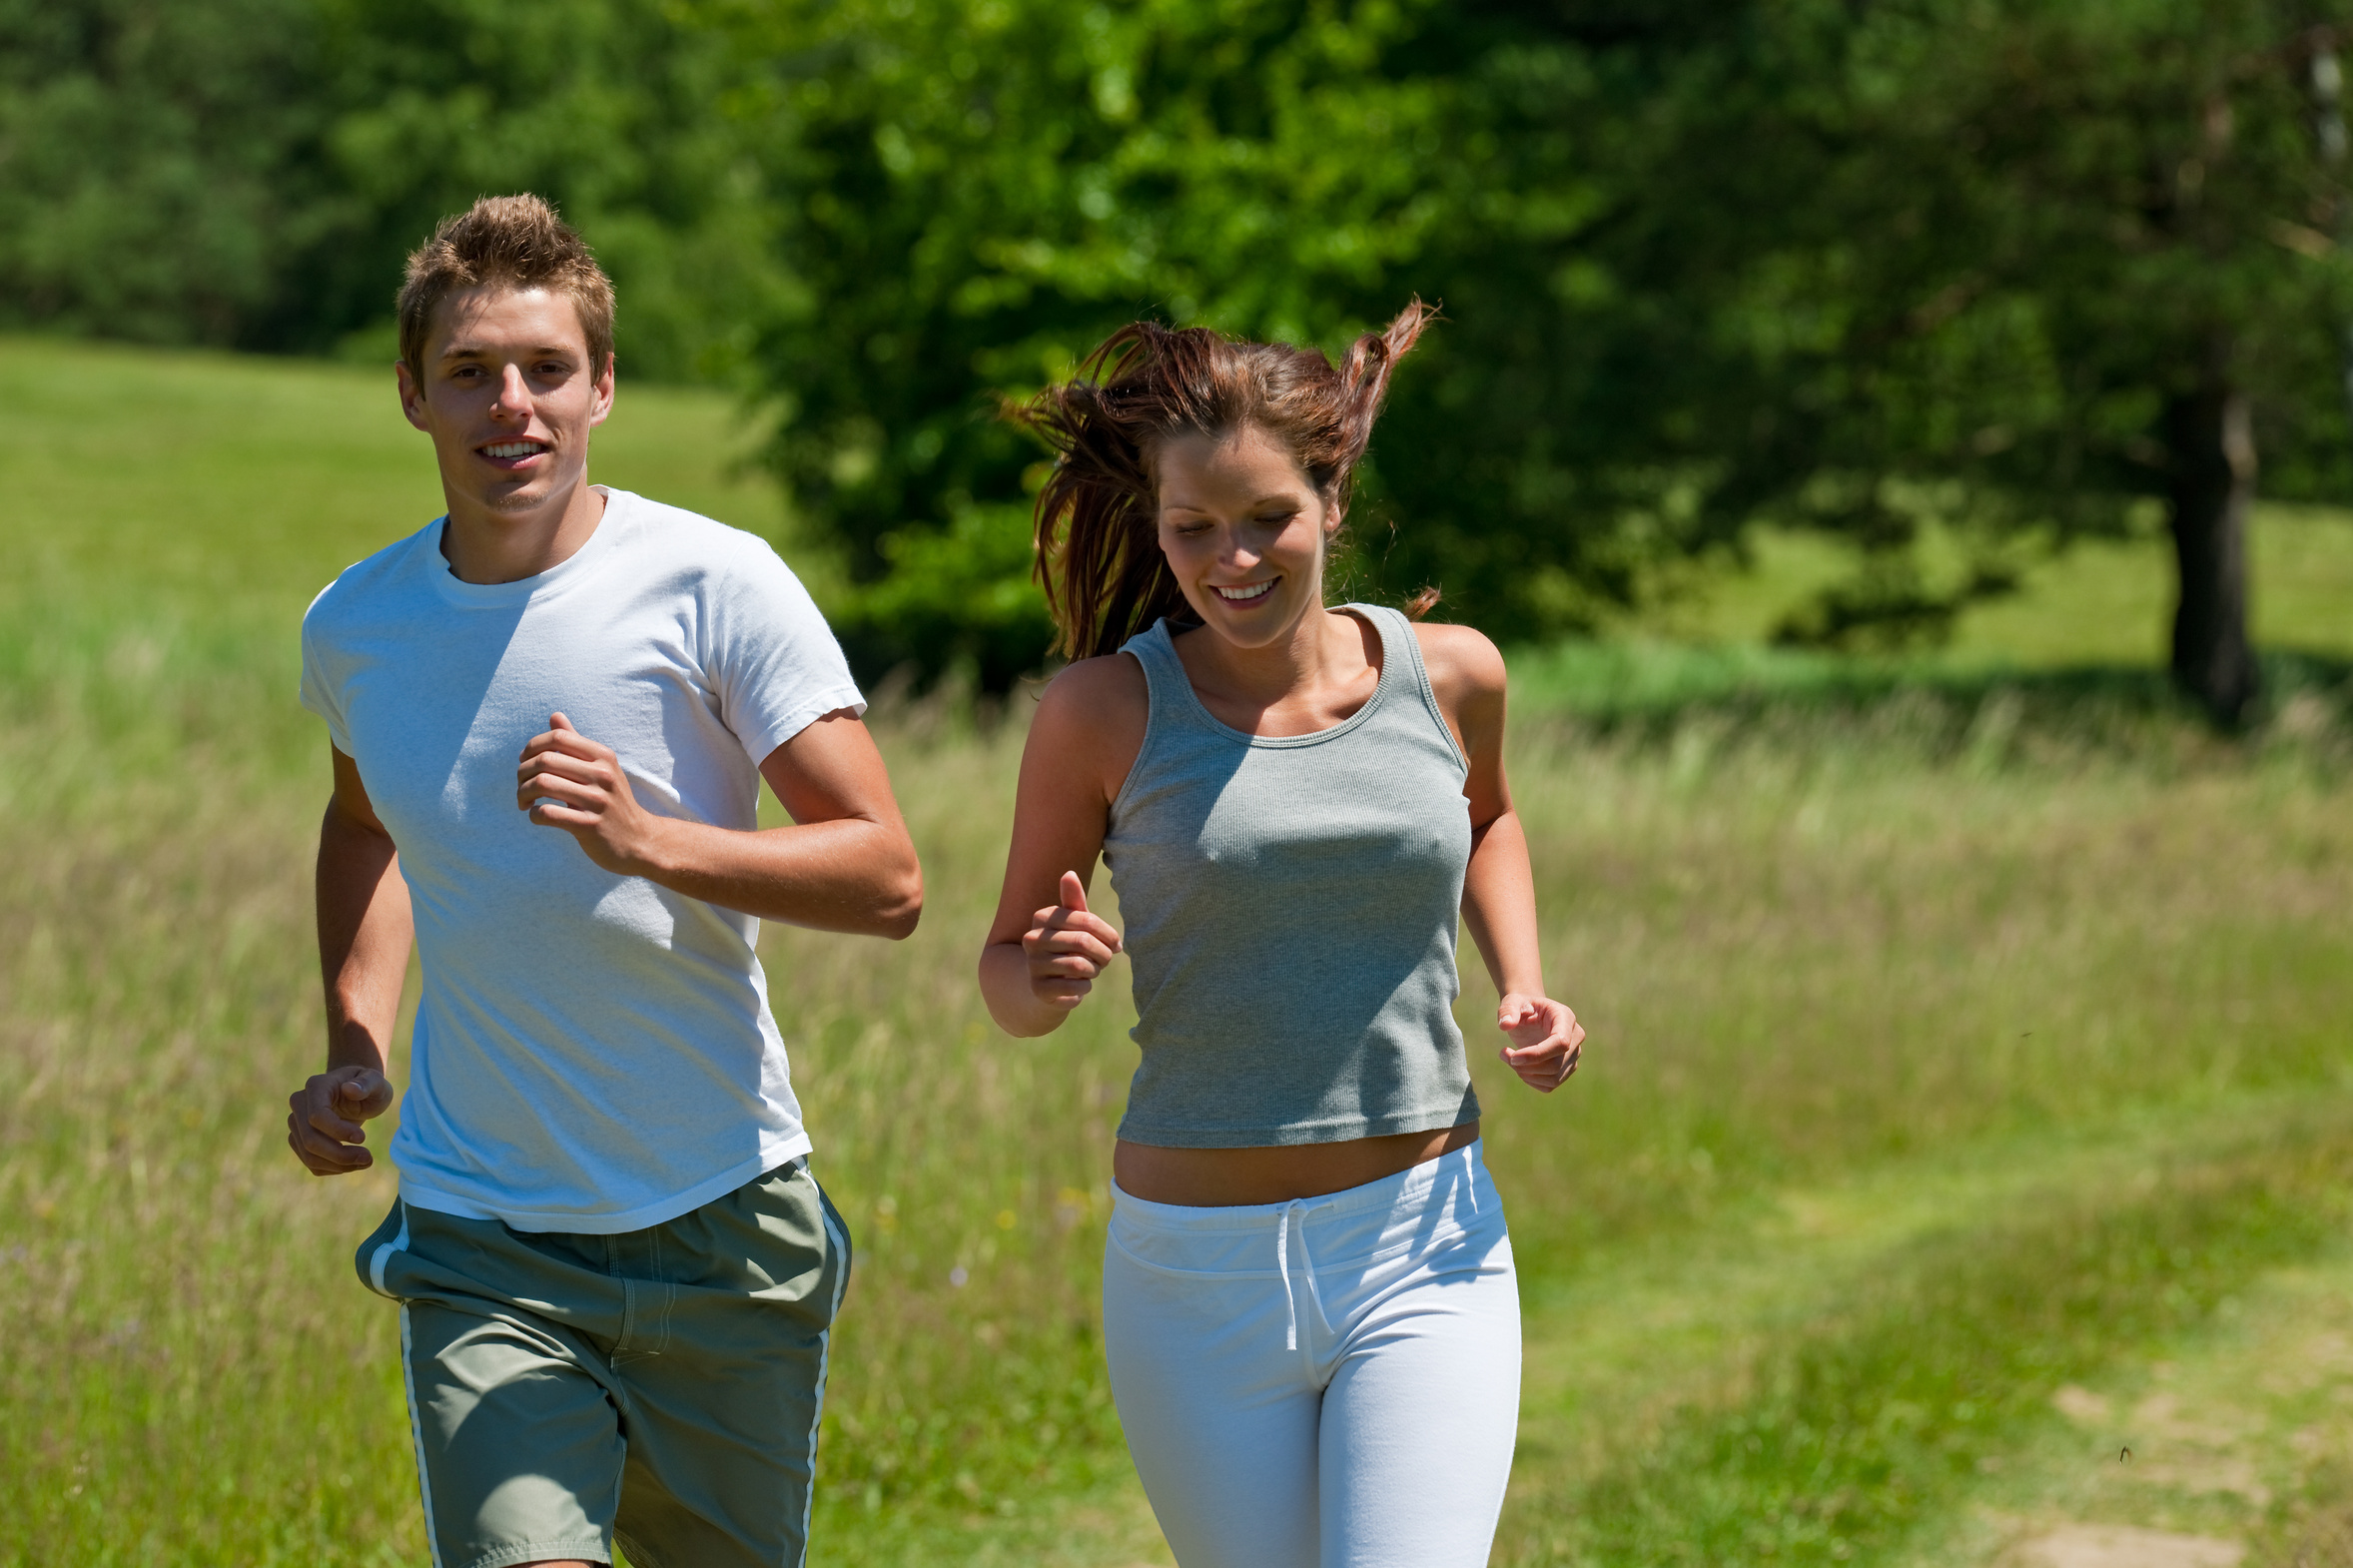 Young man and woman running outdoors, shallow DOF